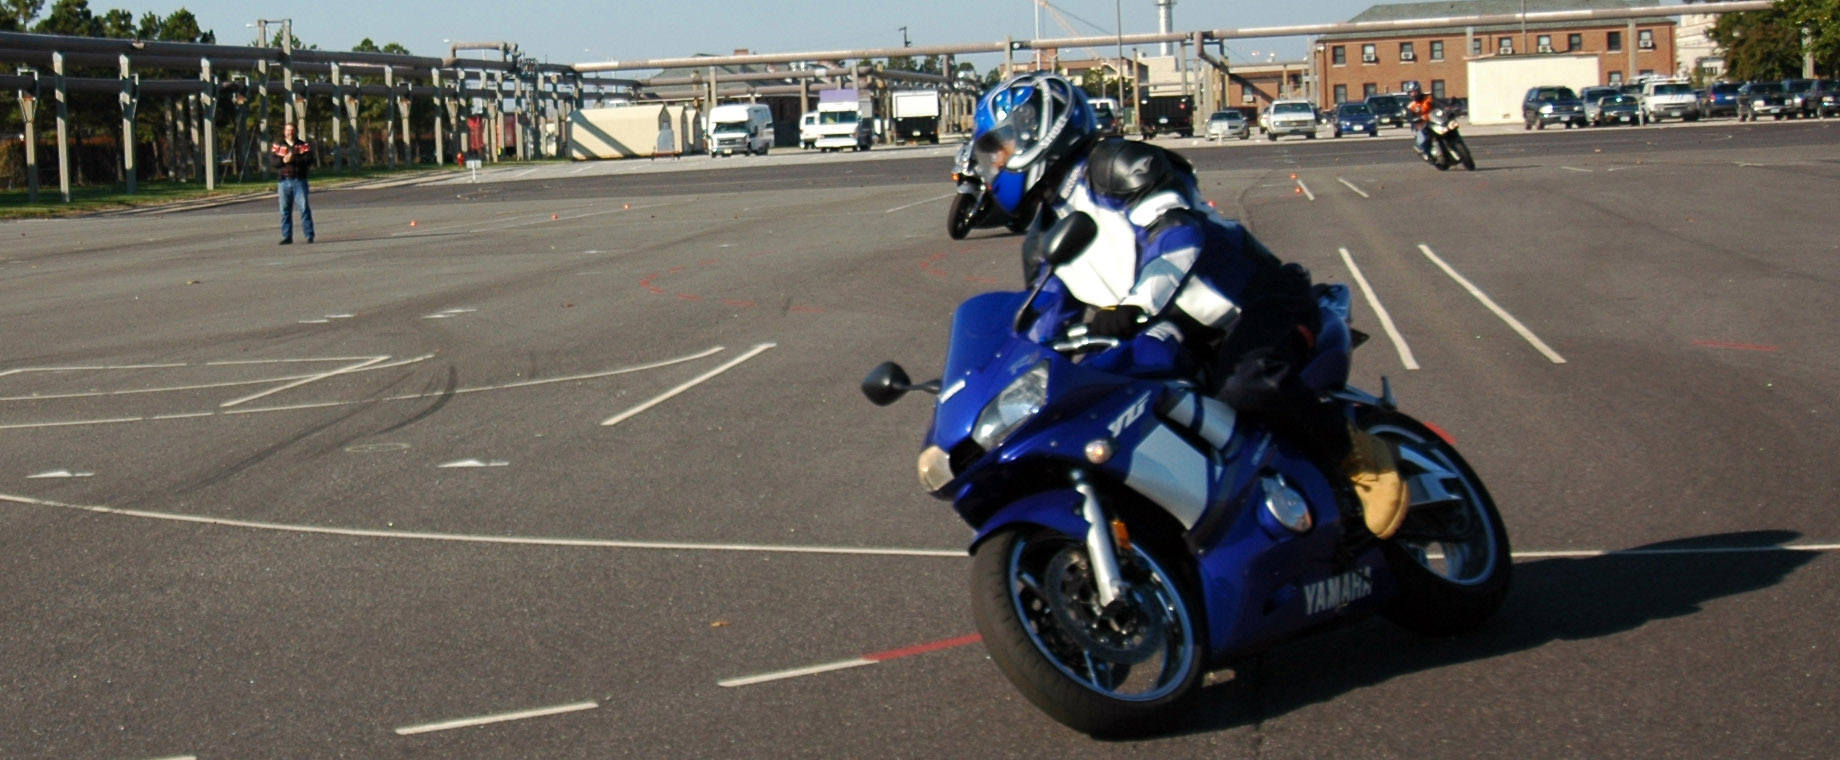 Image Gallery Motorcycle Safety Training